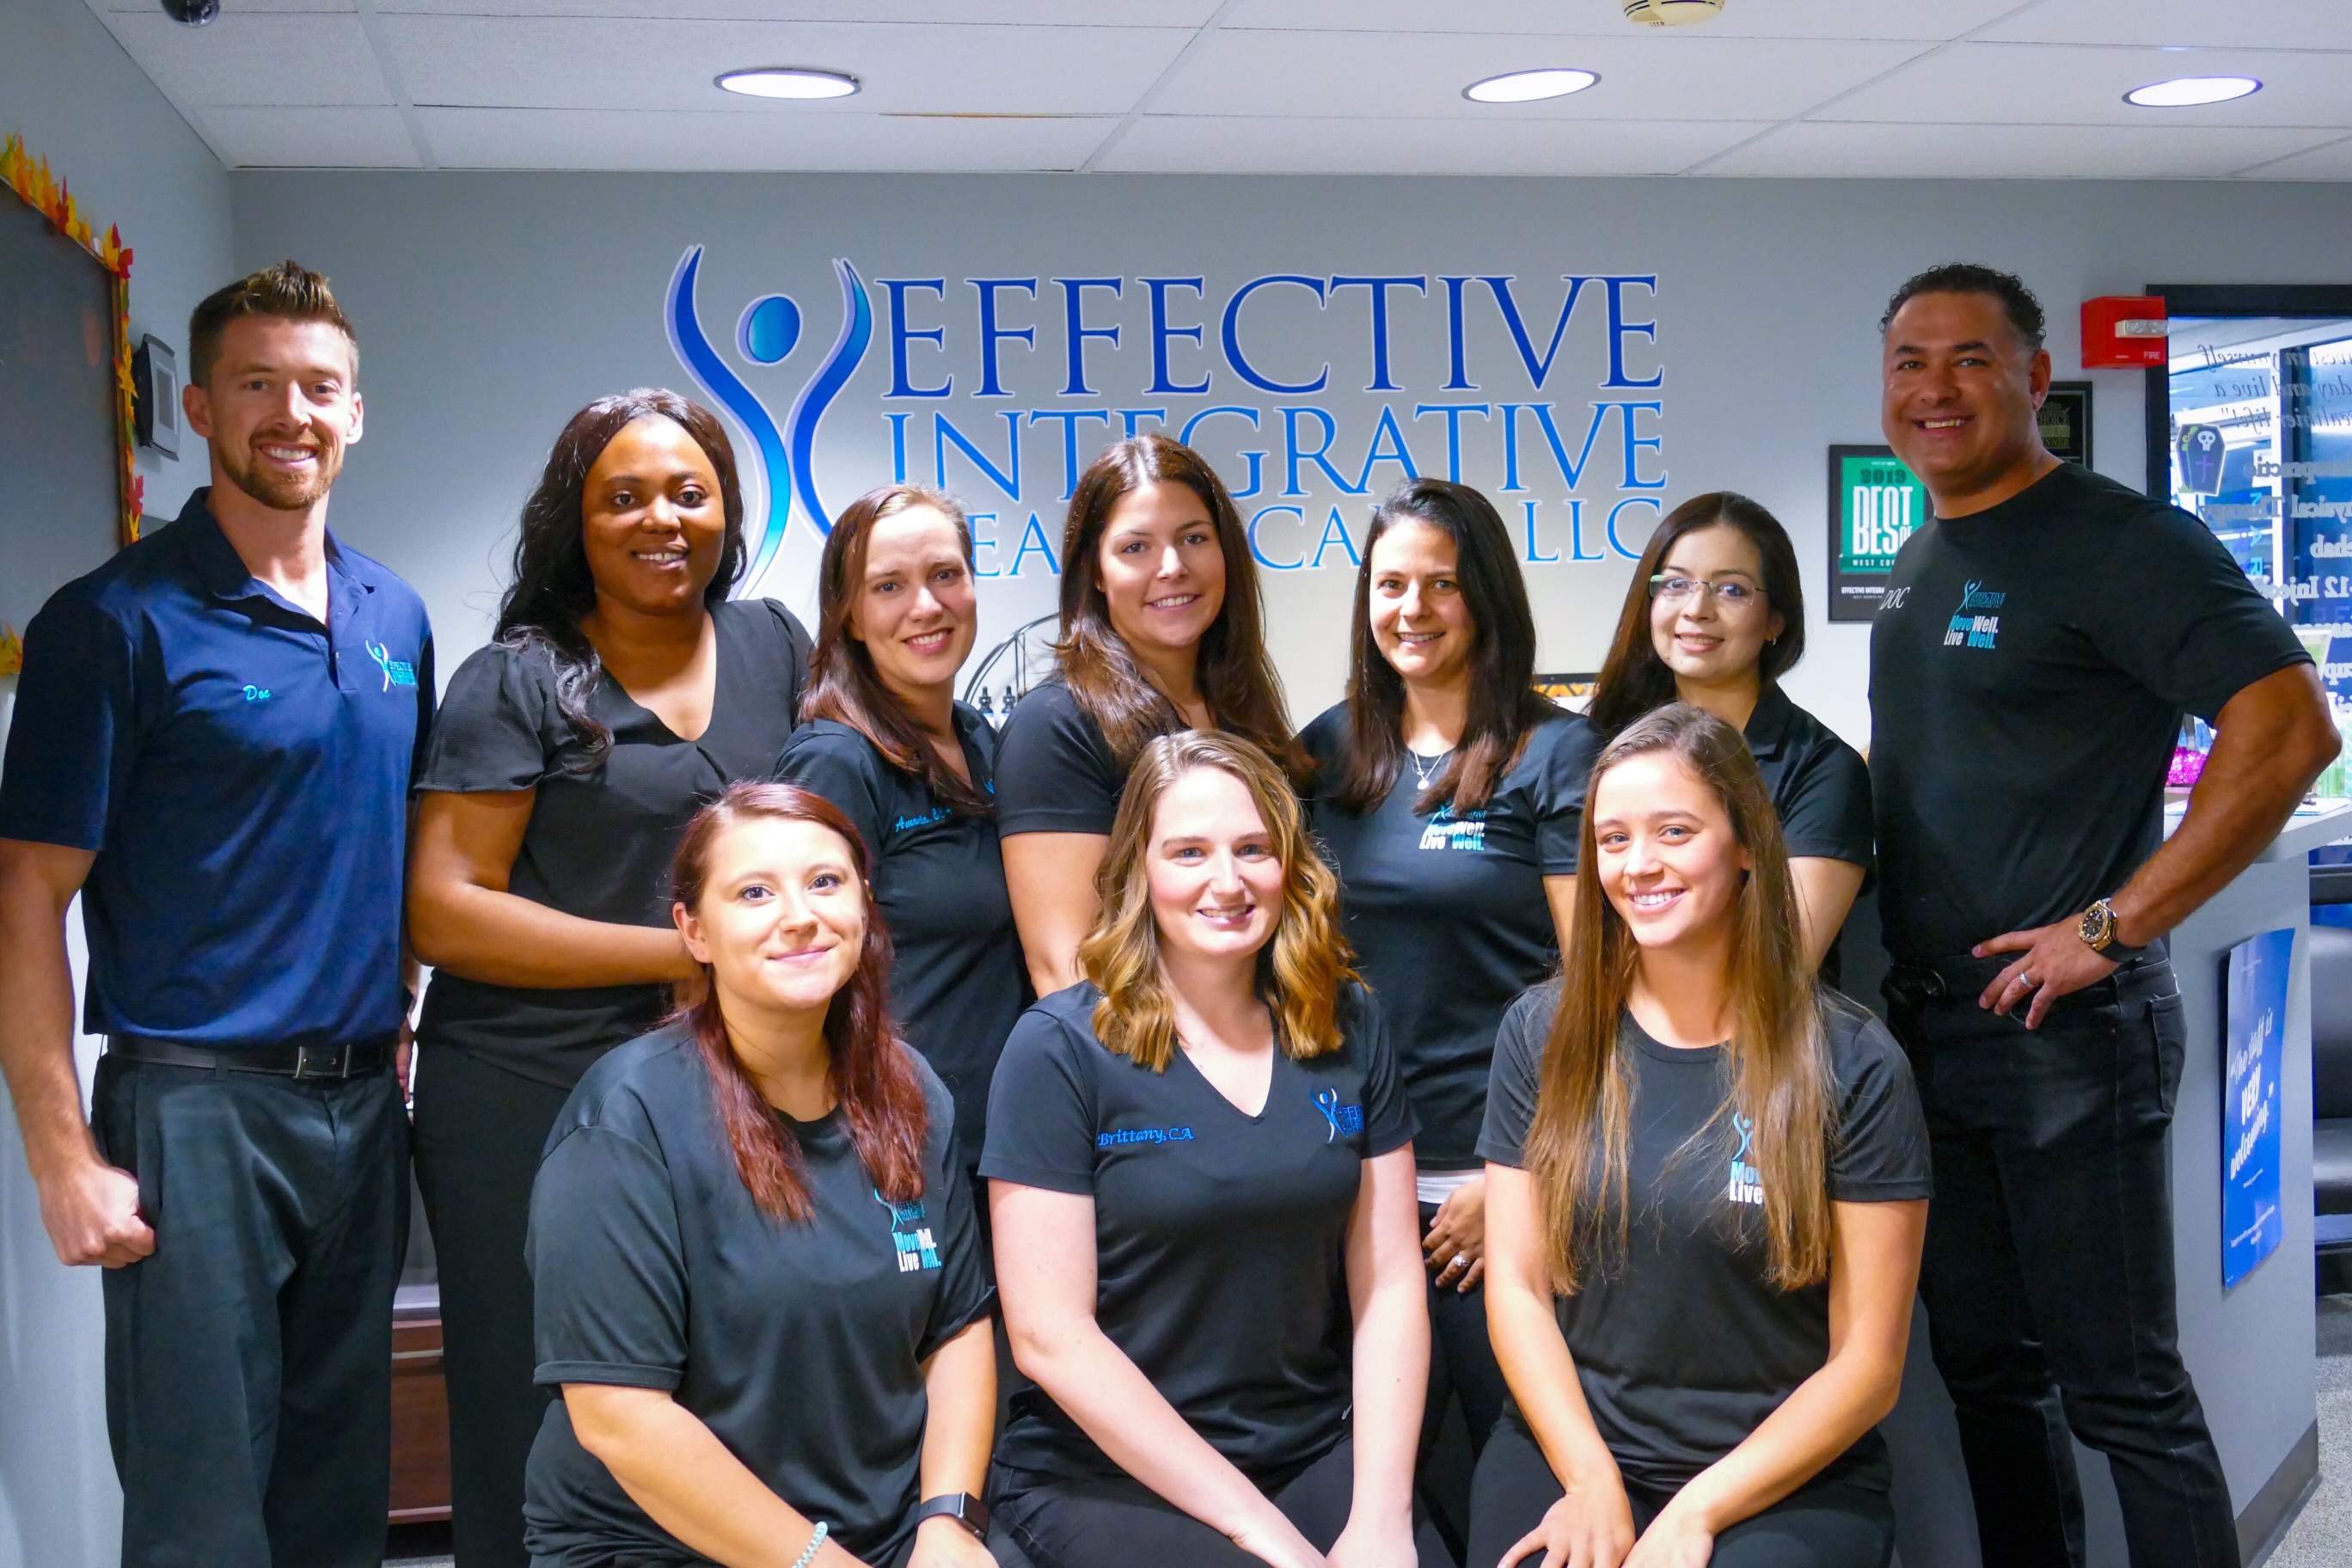 Staff Members of Effective Integrative Healthcare